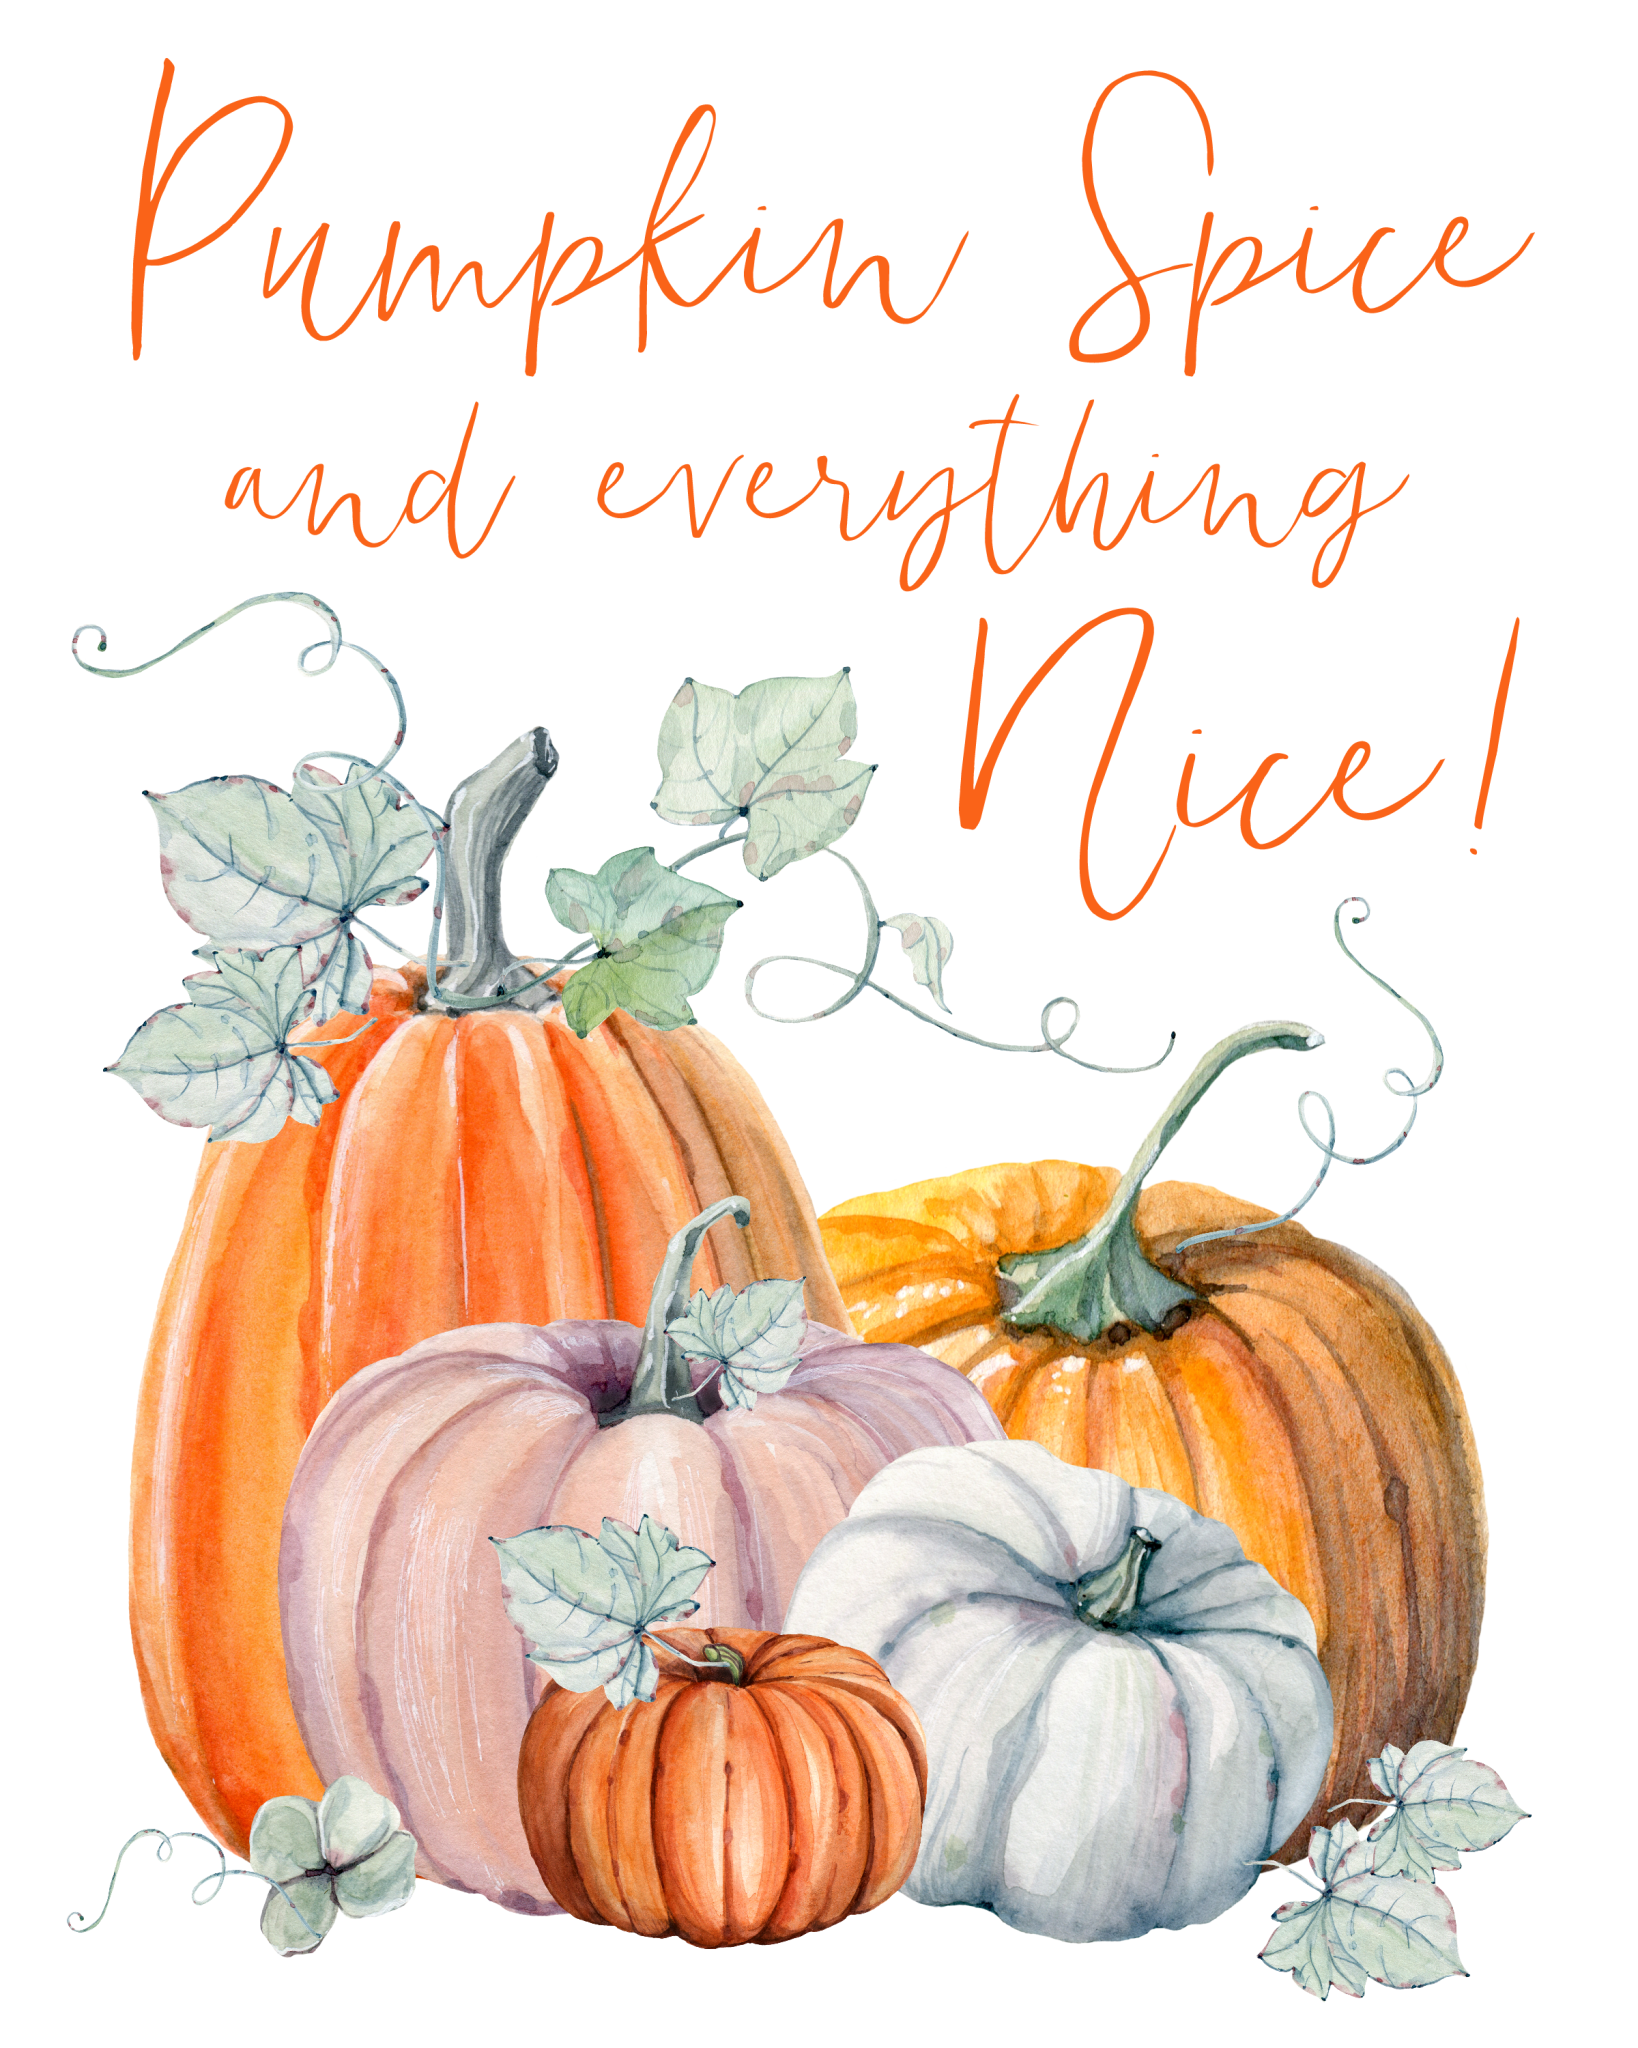 Pumpkin Spice Everything Nice Png File Shared From Box Fall Printables Free Fall Printables Pumkin Decoration